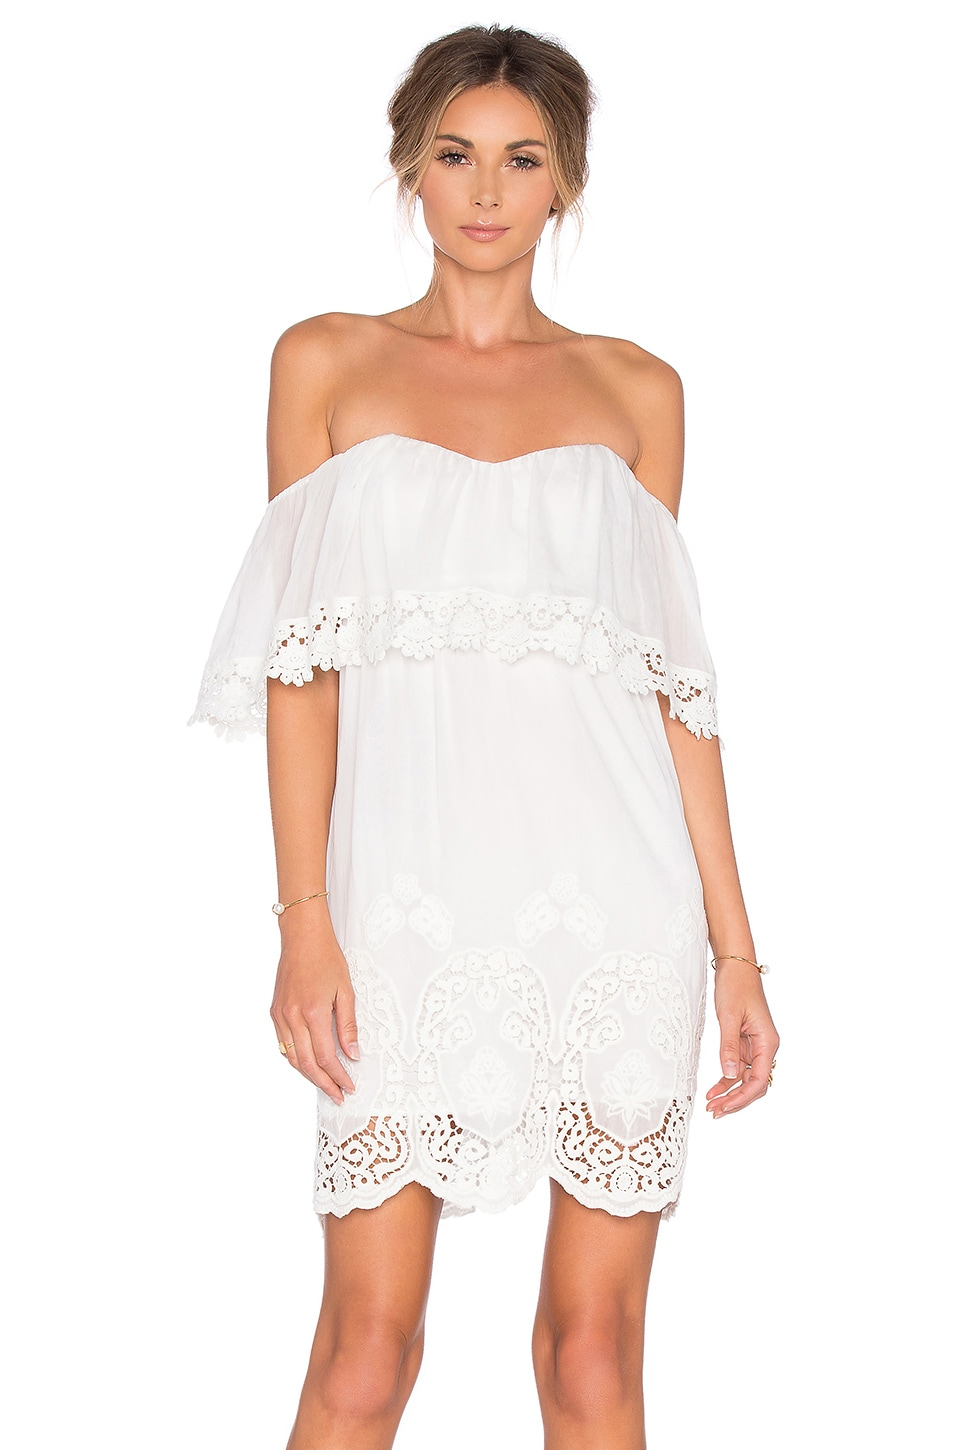 Lucy Paris Ophelia Lace Dress in White